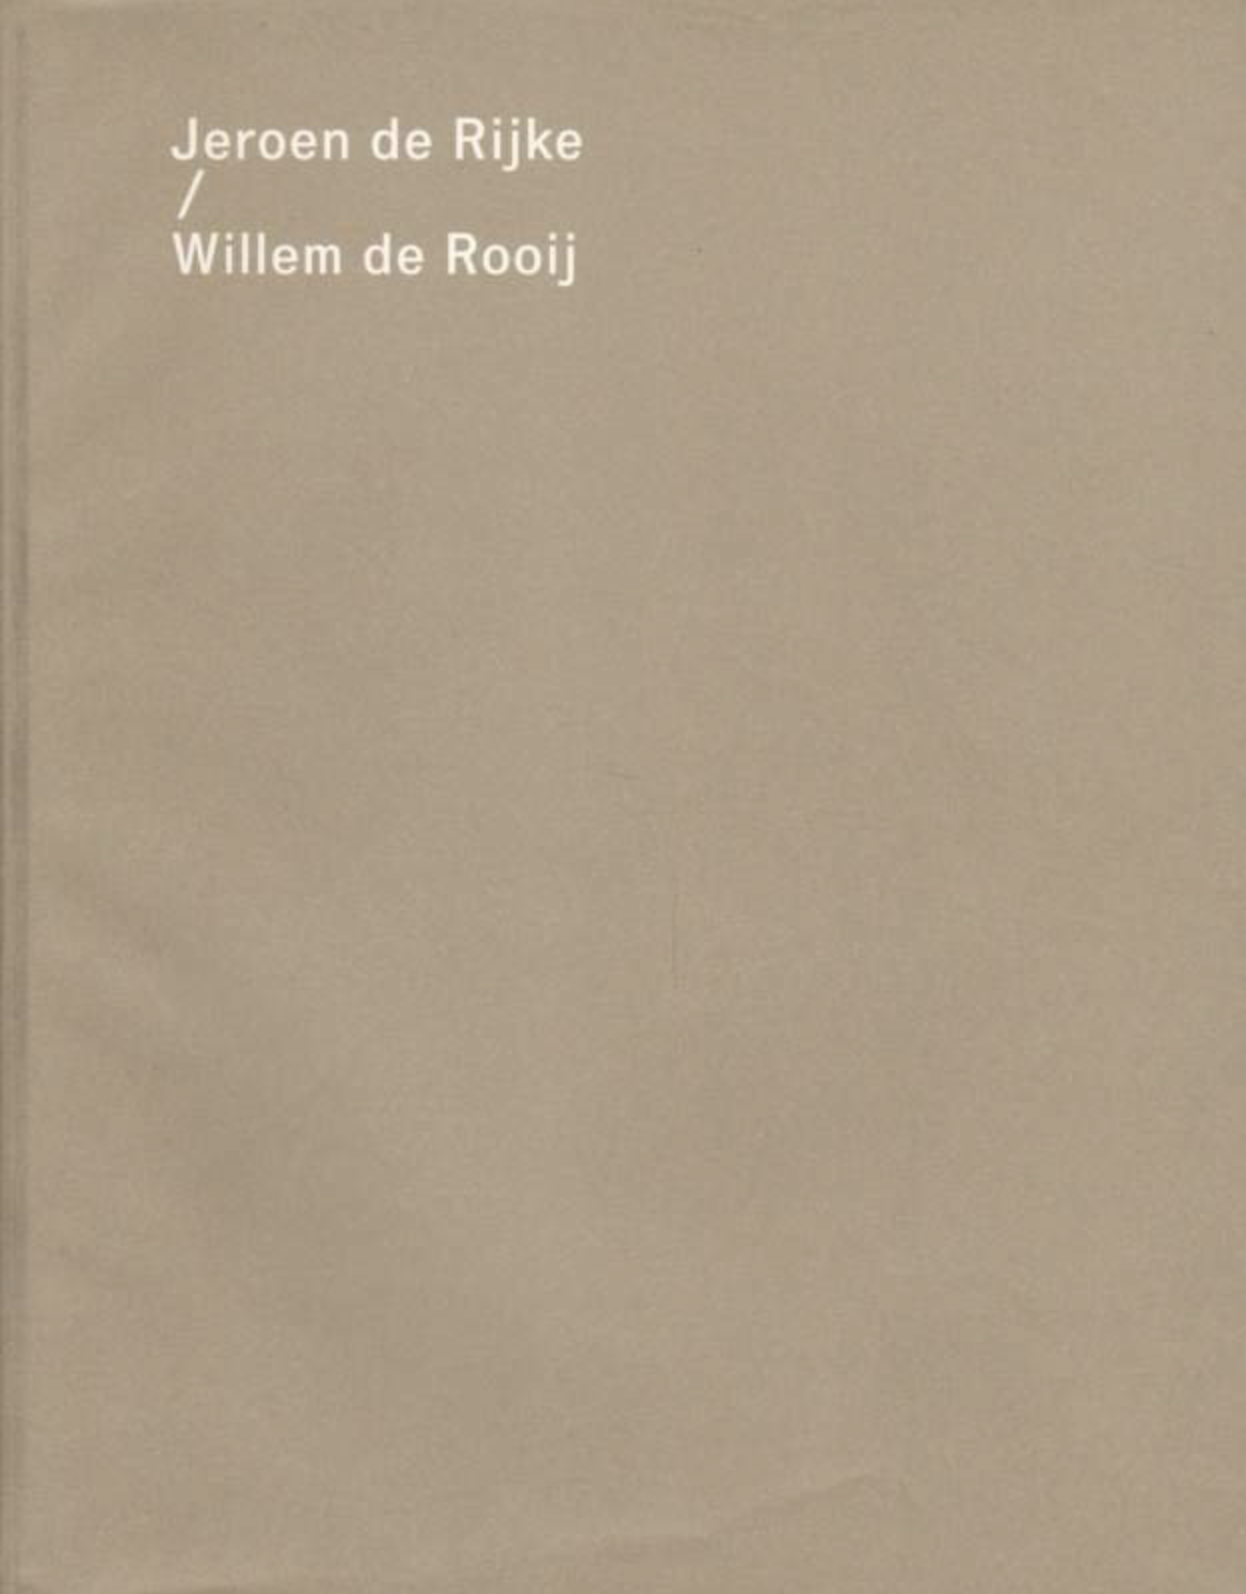 Jeroen de Rijke / Willem de Rooij – 2008, 254 pages, Owrps, fully illustrated in color, 28 x 21,5 cm Euro 40,- – Catalogue for the survey exhibition of de Rijke / de Rooij at K21 Kunstsammlung Nordrhein-Westfalen und MAMBo, Museo d'Arte Moderna di Bologna with a comprehensive documentation on their works, with new essays by Sabeth Buchmann, Andrea Viliani, and Ann Goldstein.